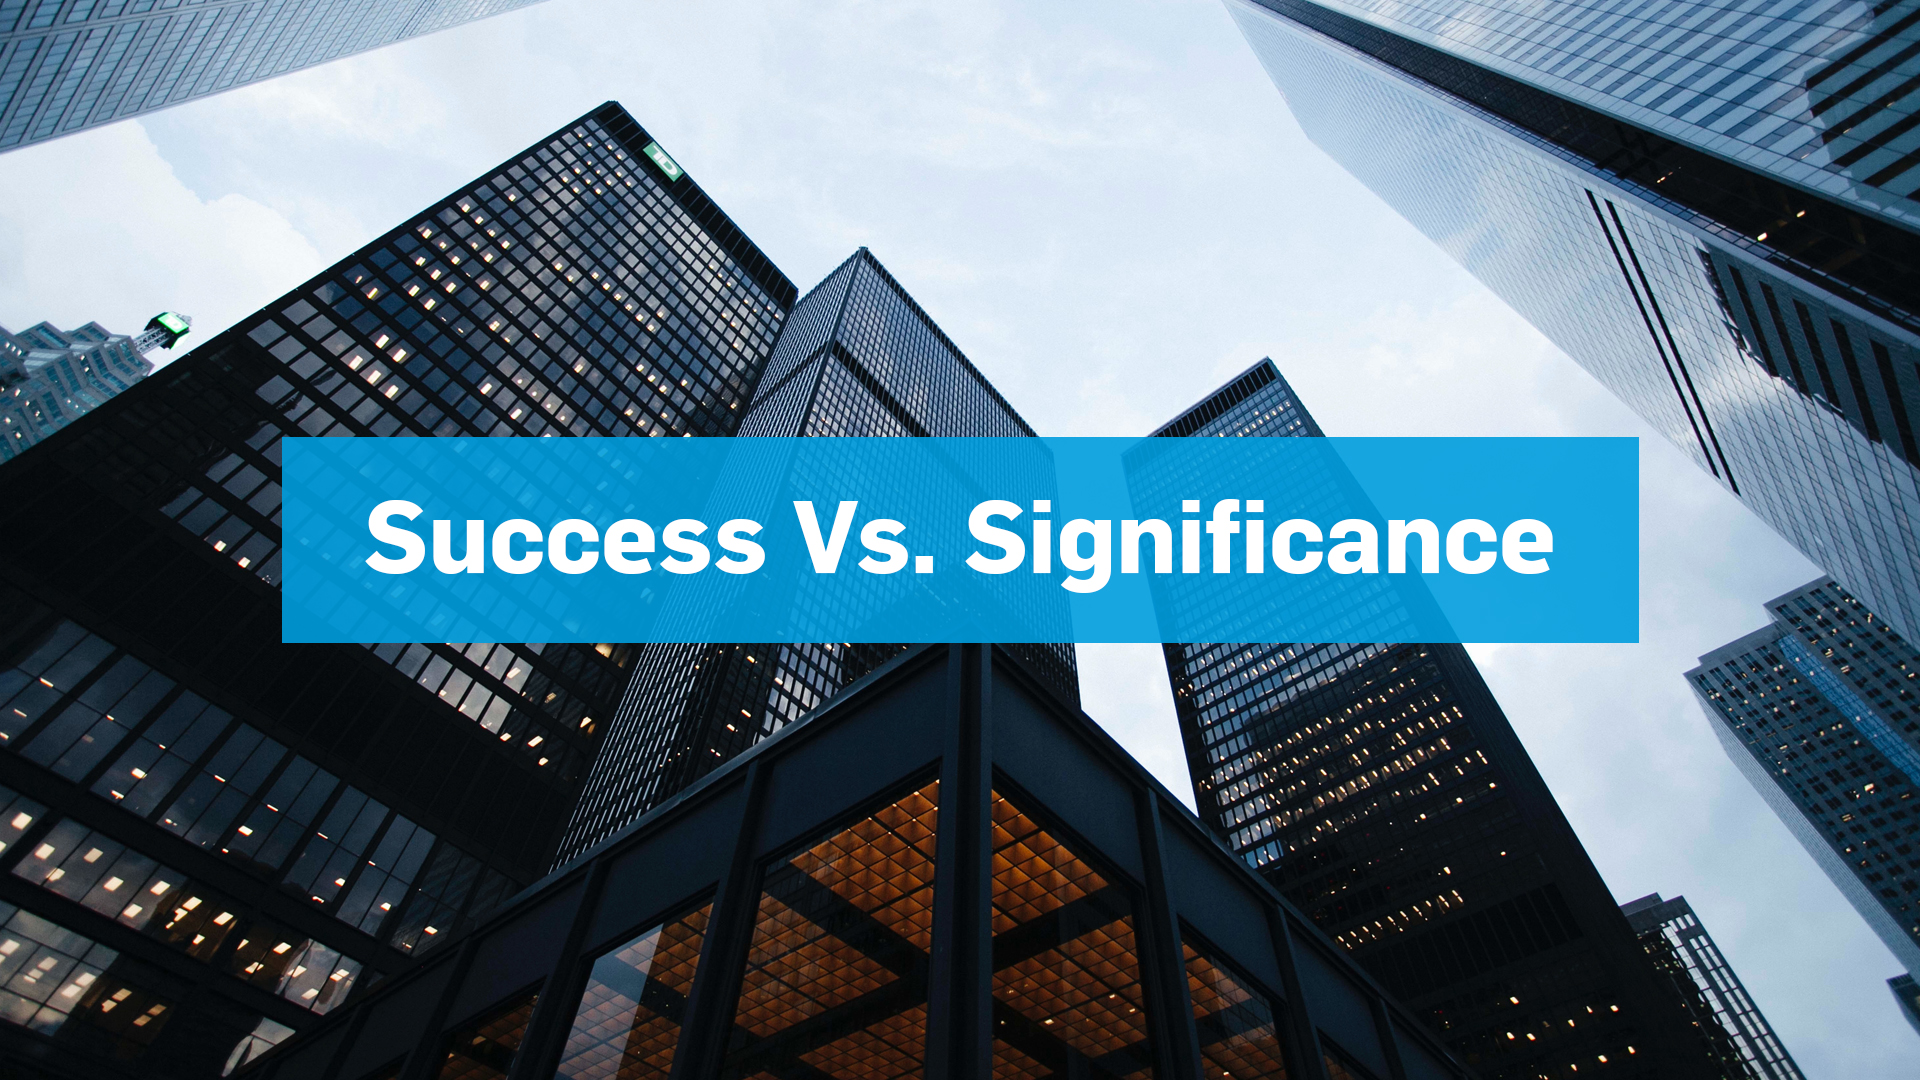 Success vs signif. 1920x1080px.jpg